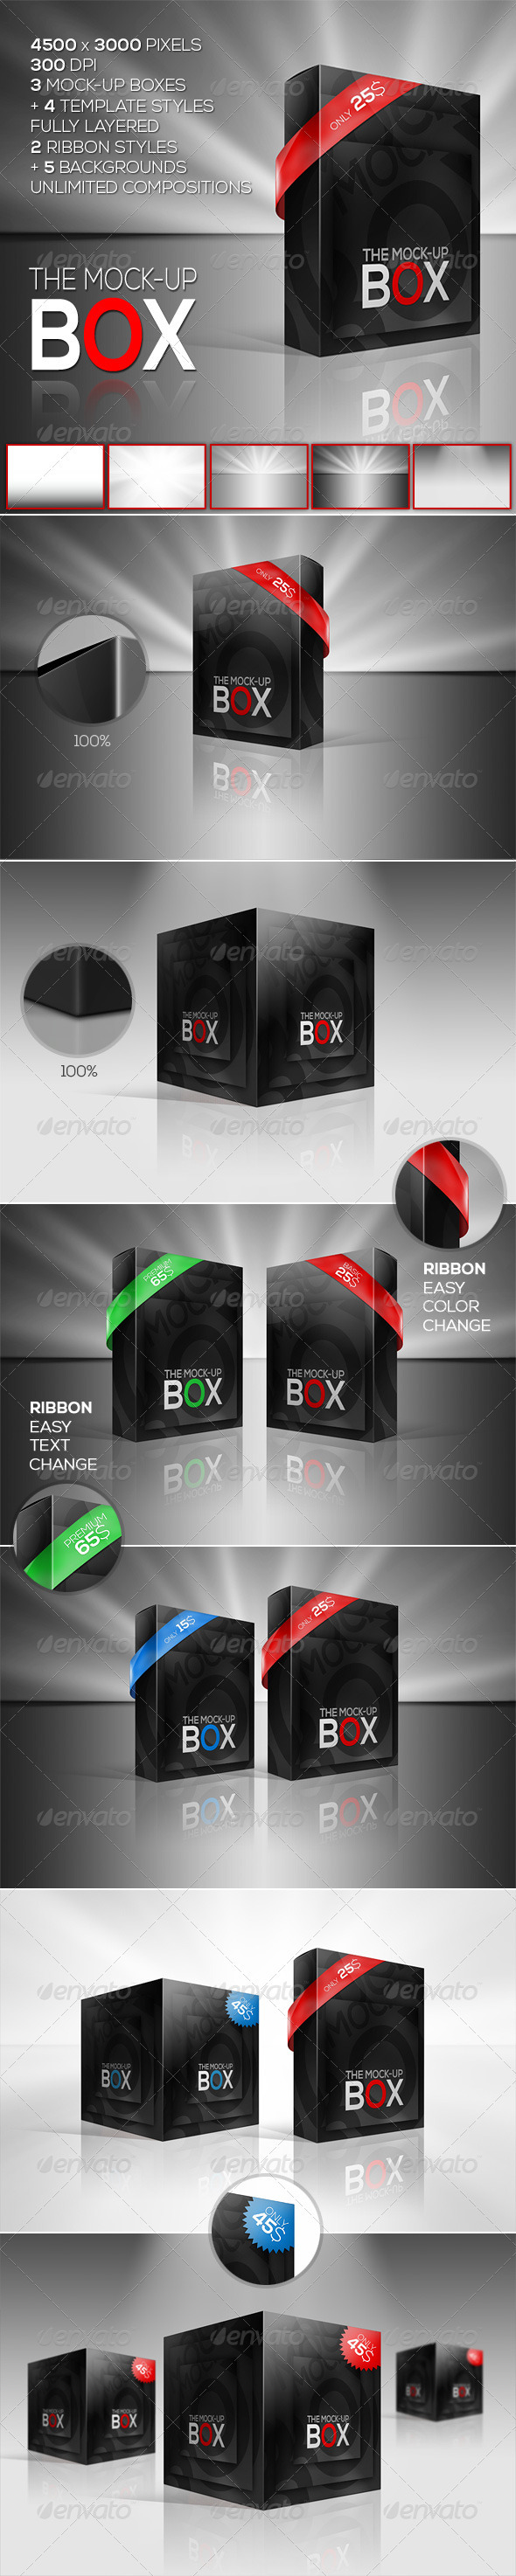 The Mock-Up Box | 7 Photorealistic Styles - Miscellaneous Packaging